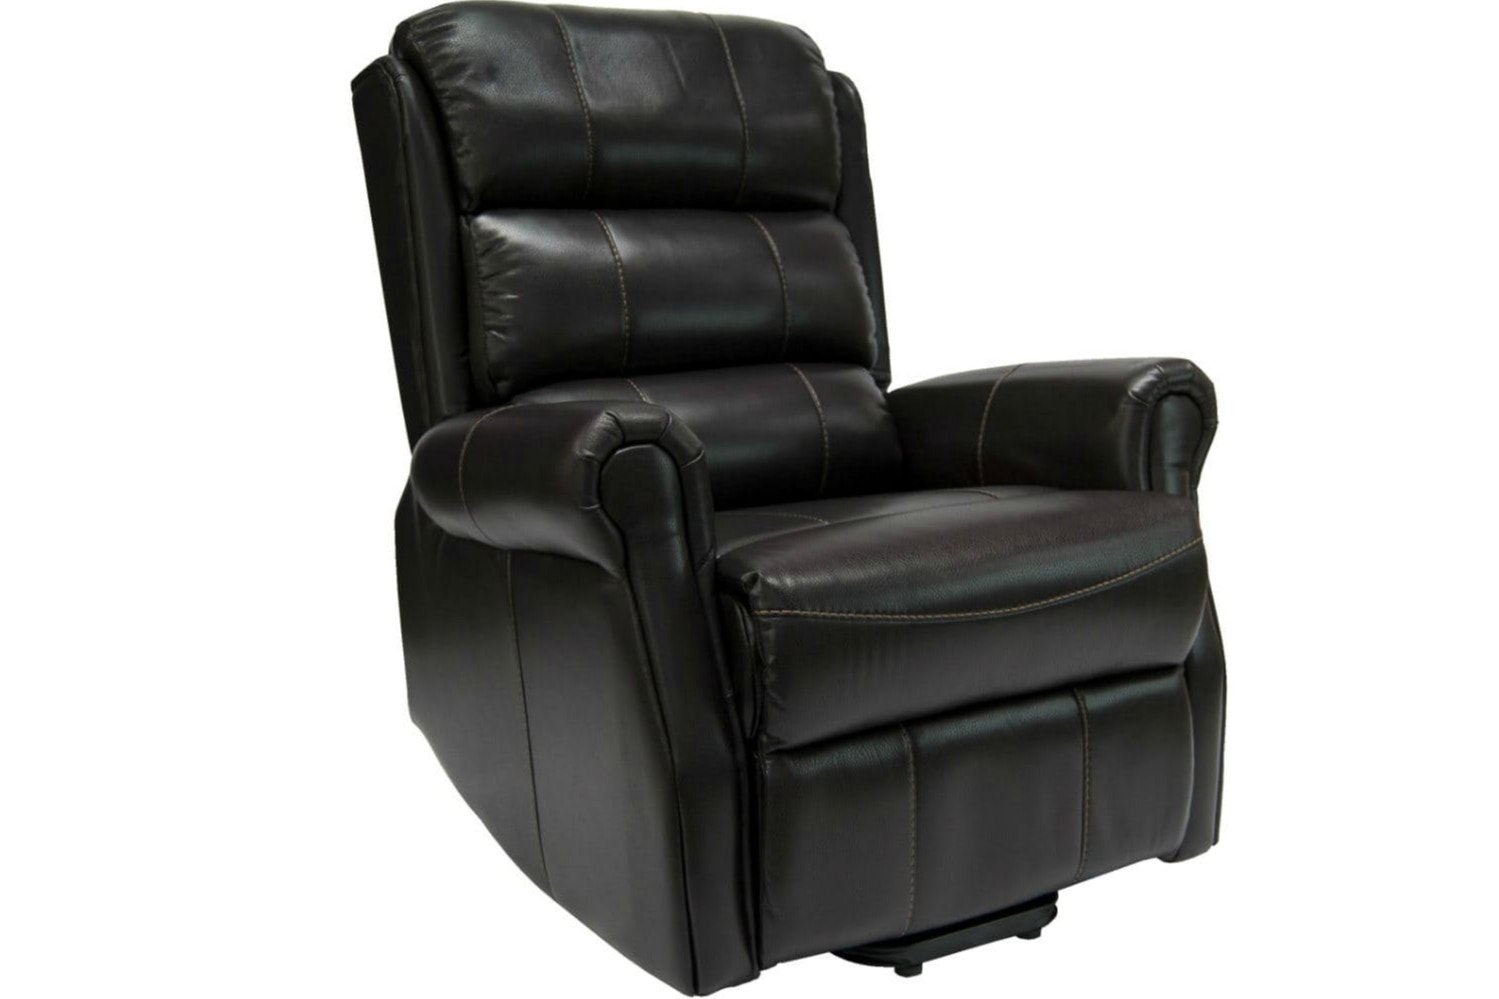 Hudson Recliner Chair Chocolate